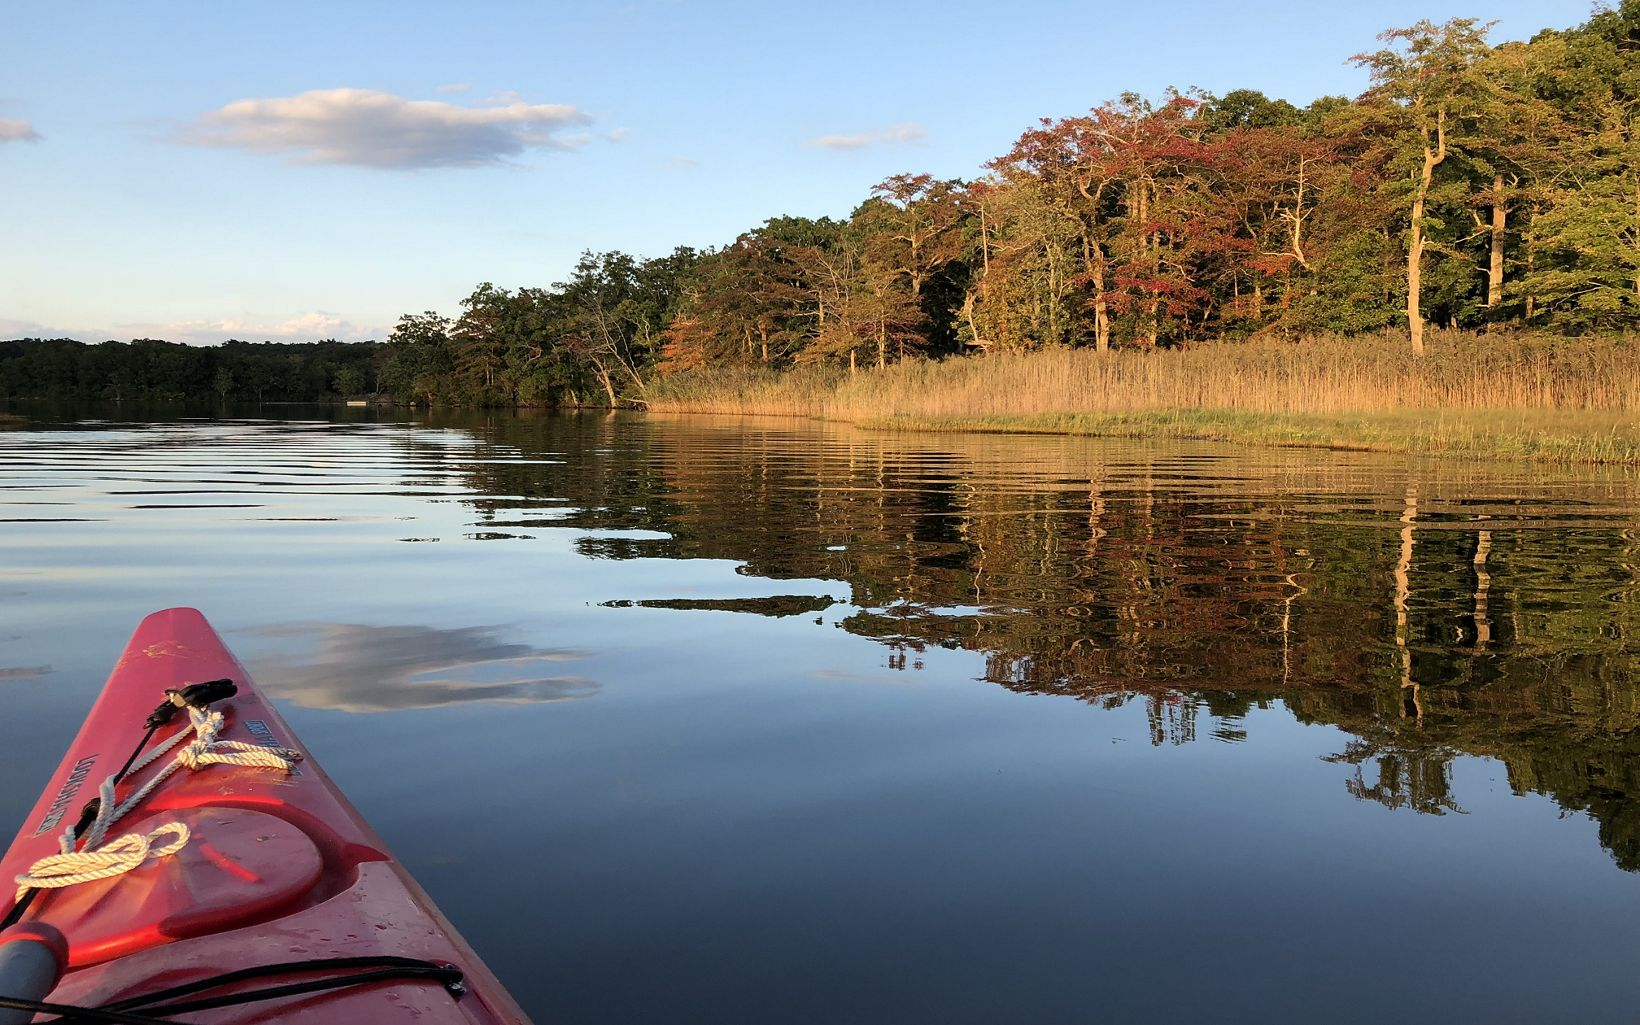 Looking across the bow of a red kayak gliding through calm waters, with forested shoreline in the background.